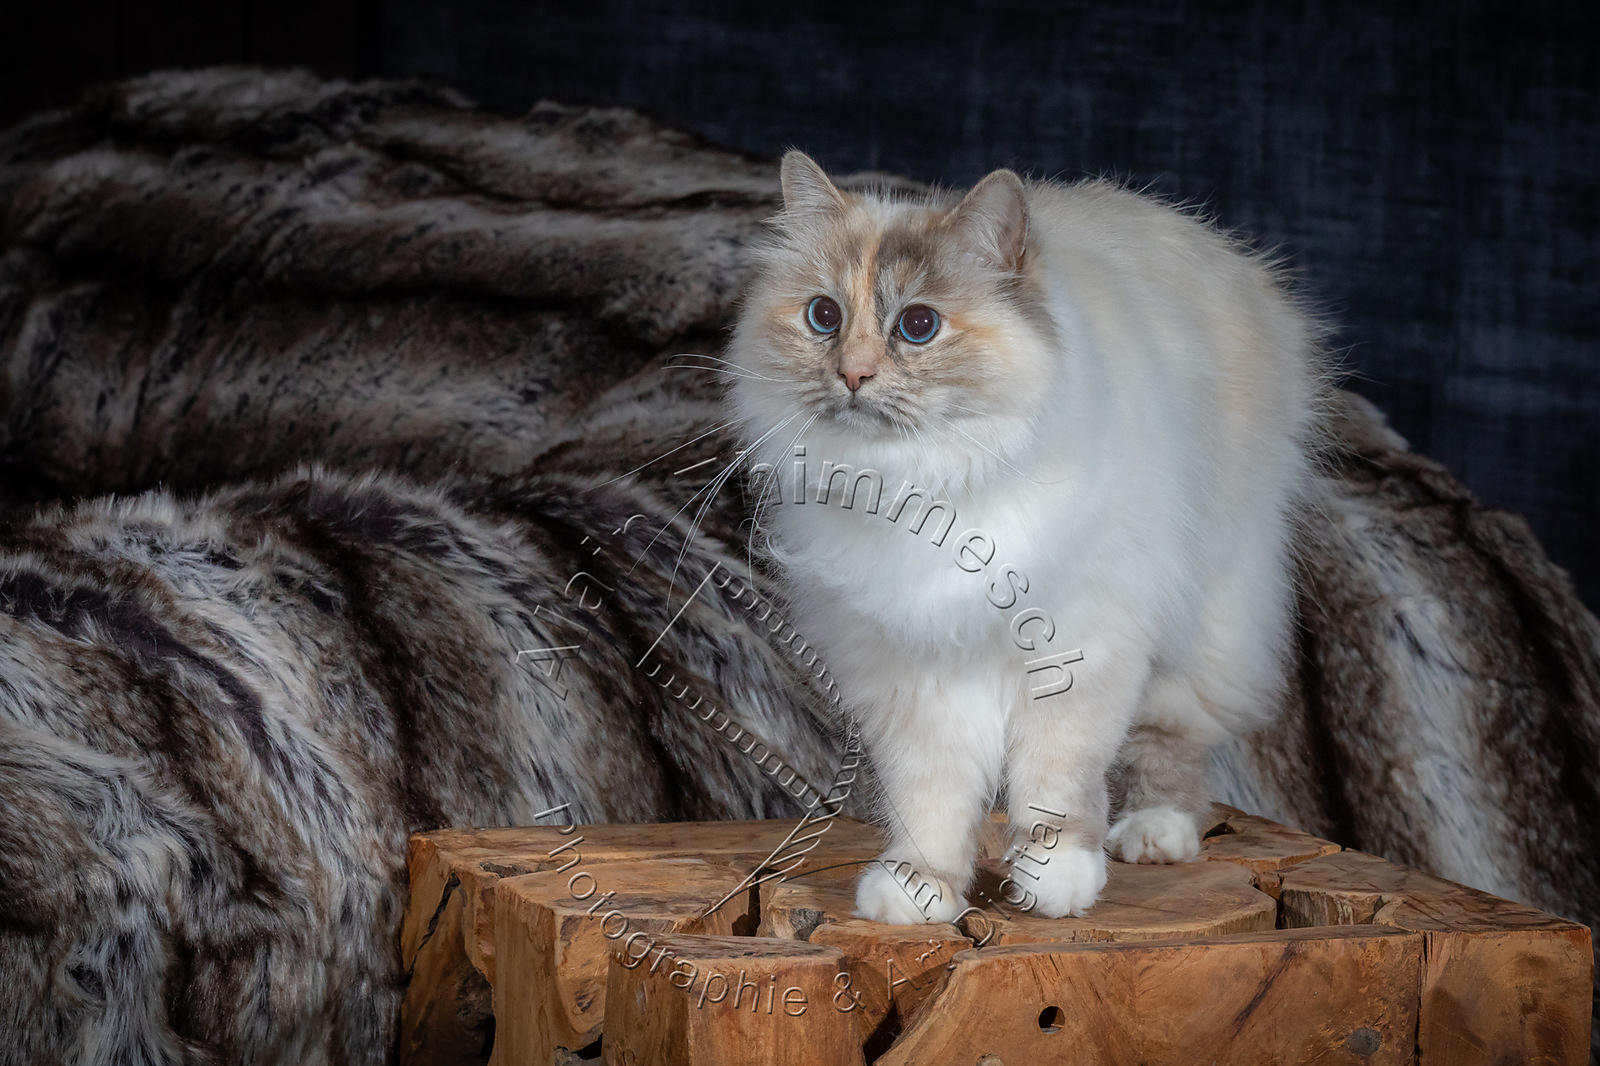 Photographie-Alain-Thimmesch-Chat-1092